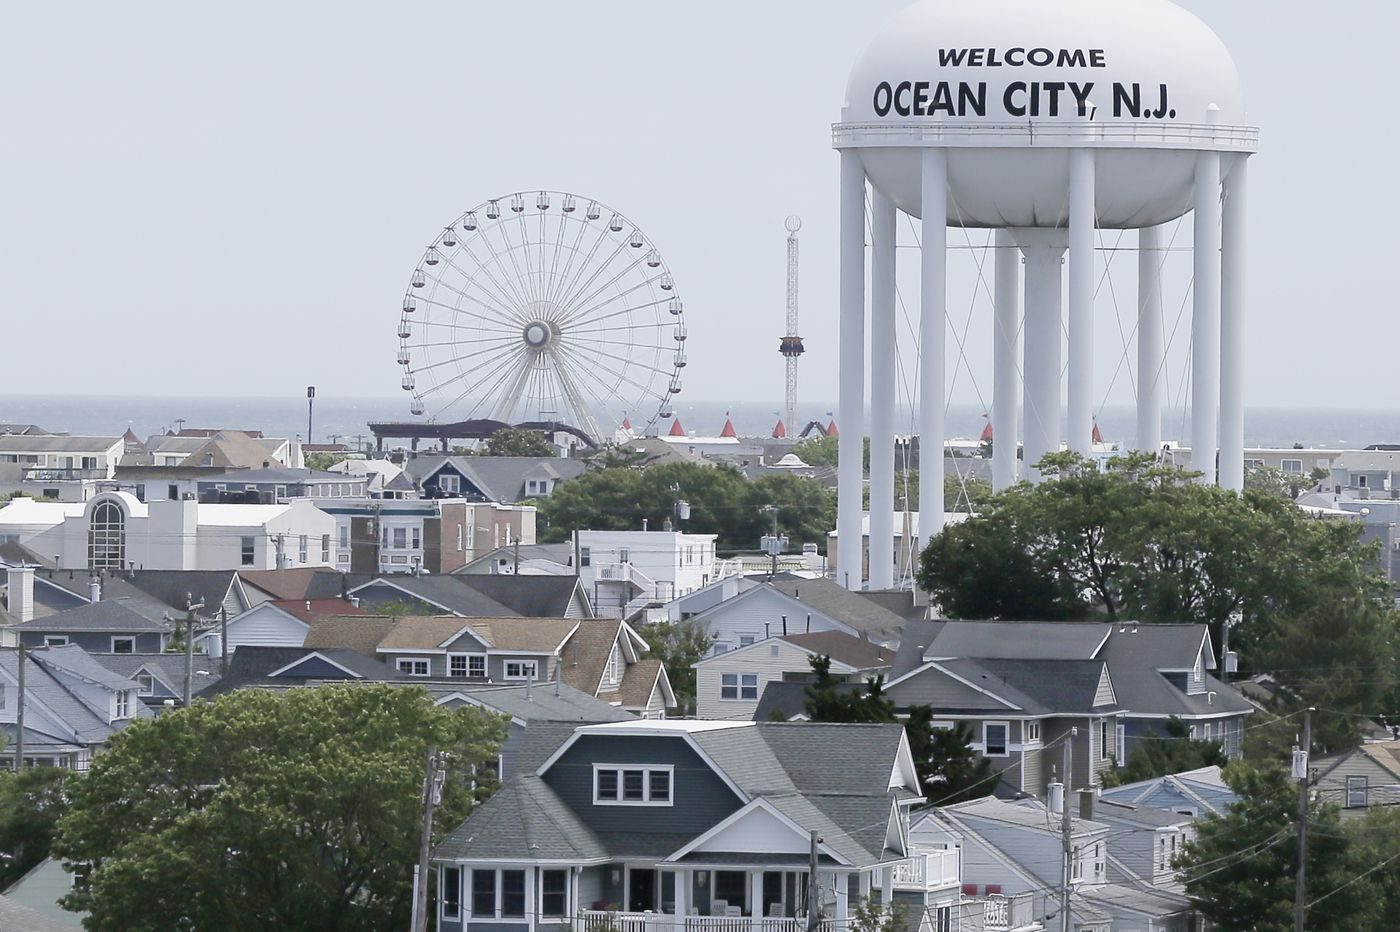 New Jersey's rental tax has changed. Here's how to know if your Shore home will be taxed.